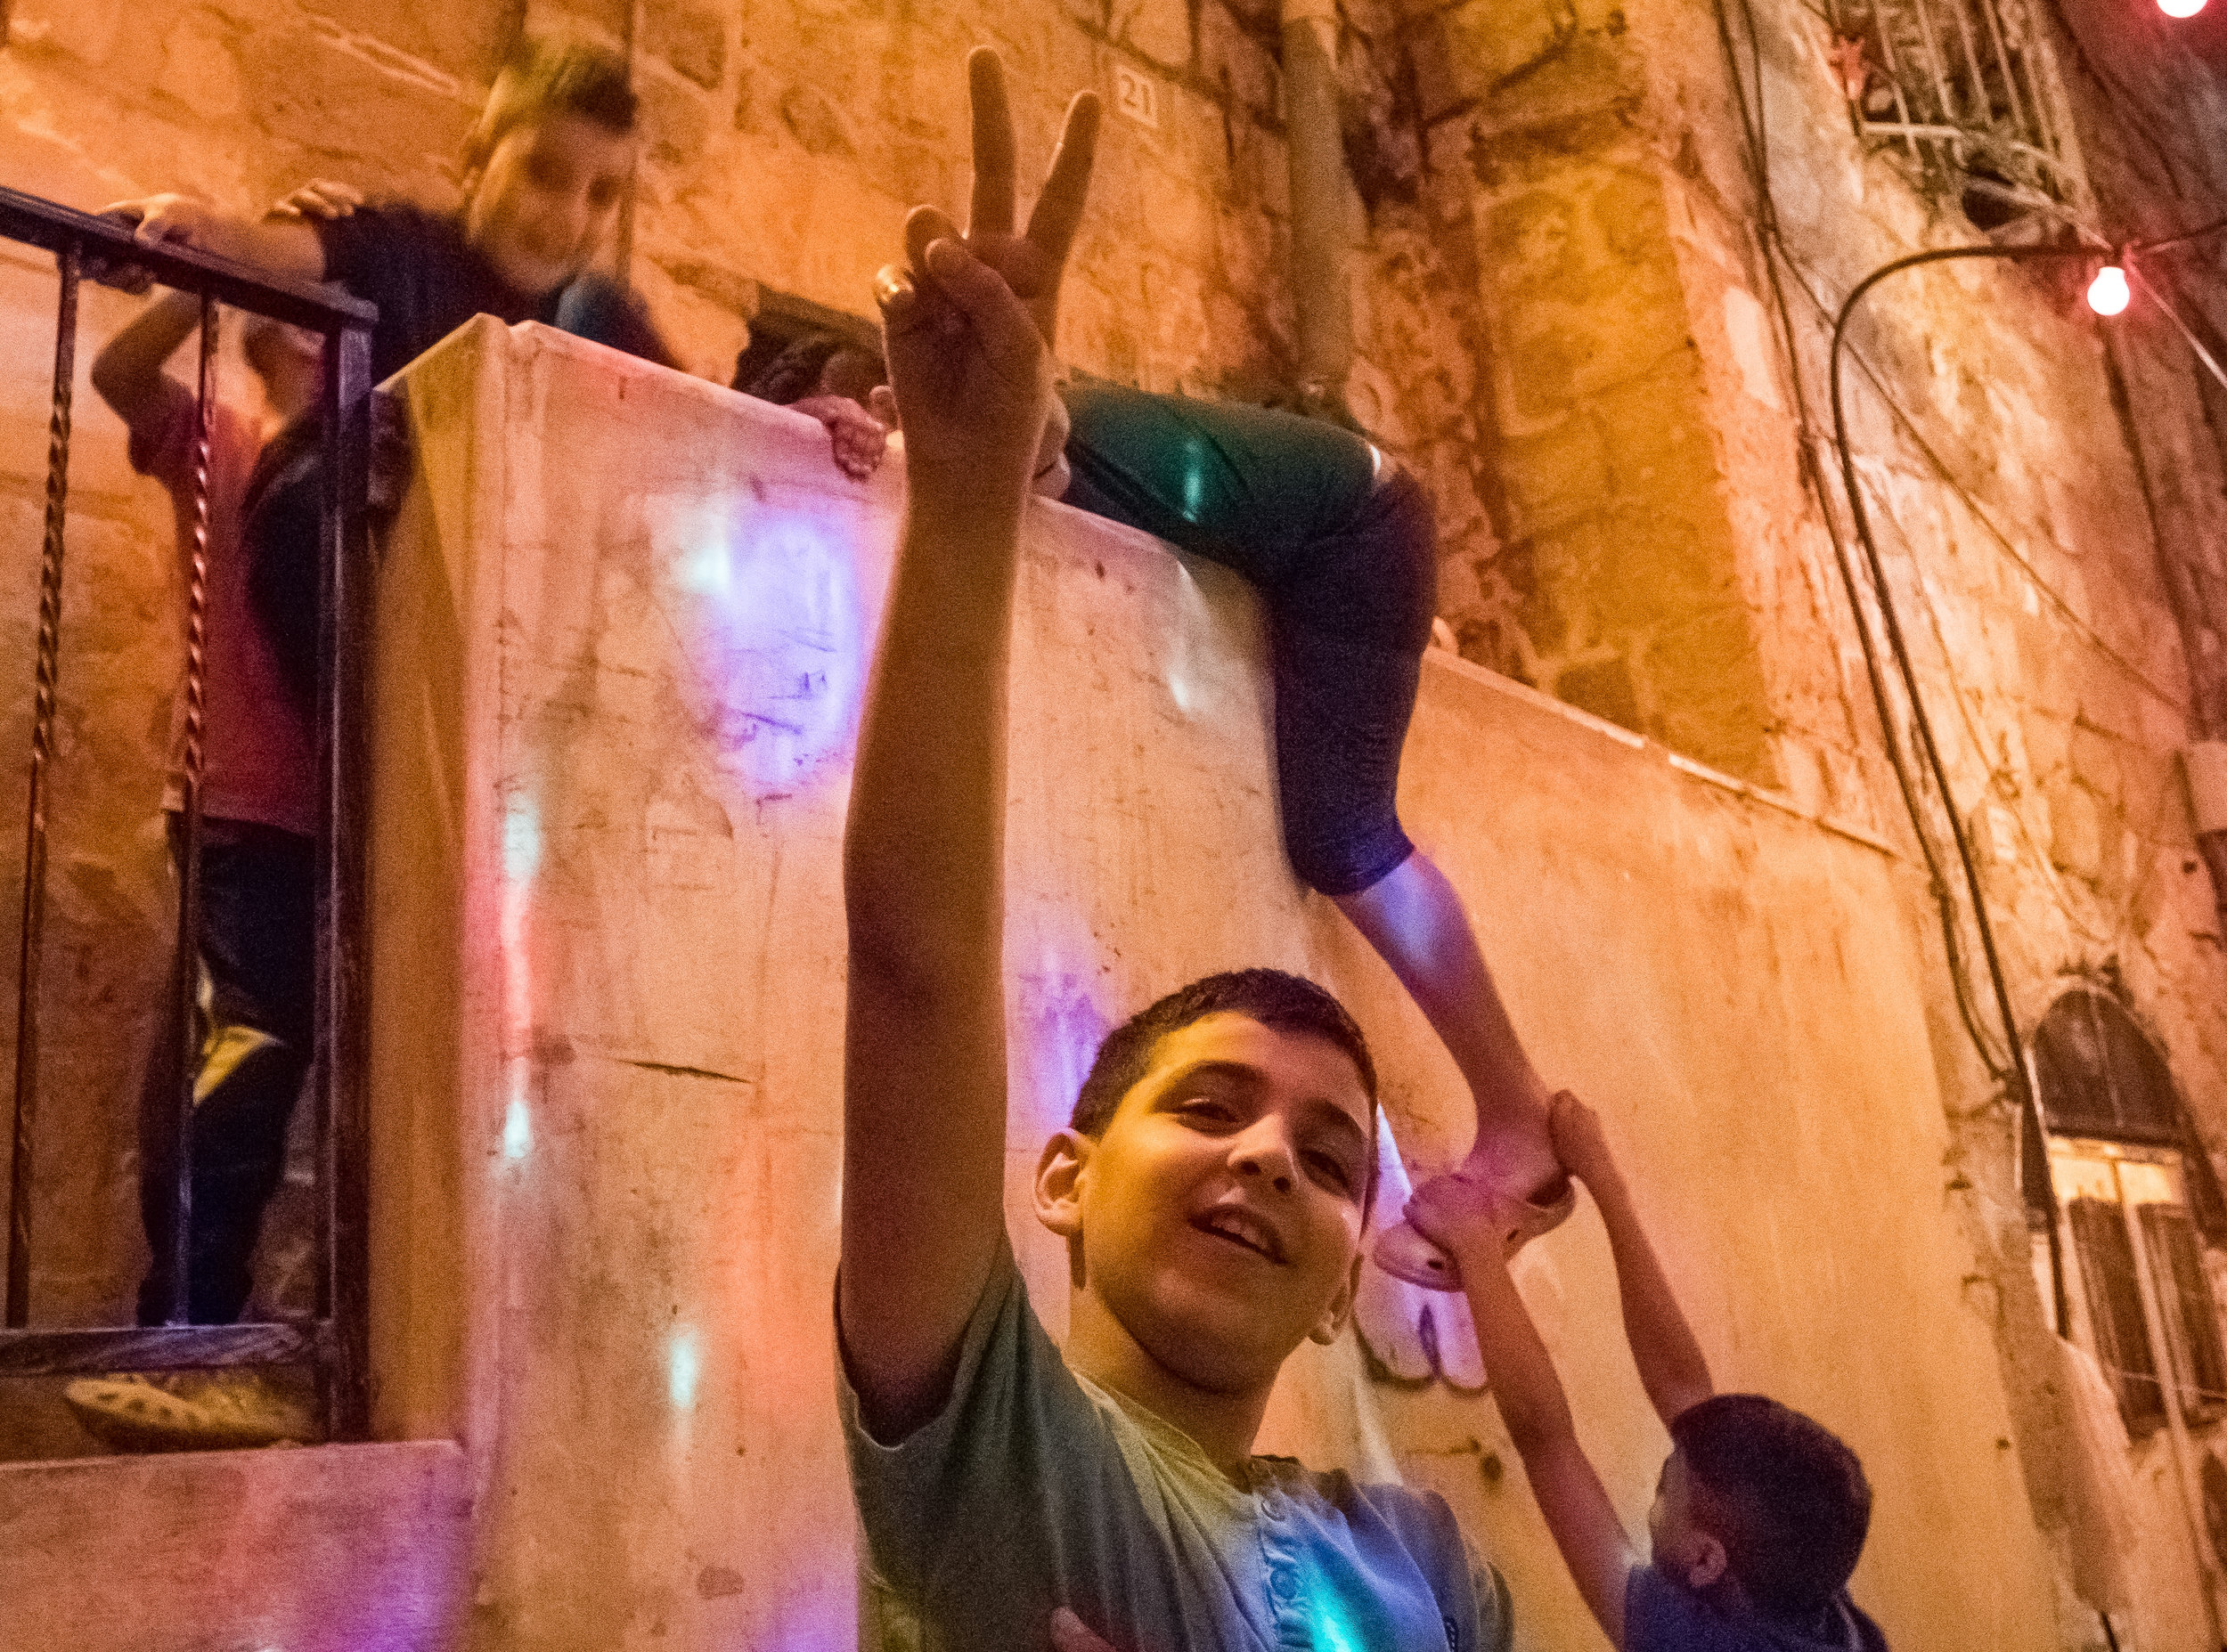 A group of Muslim boys clamor over each other to get their photo taken in an alleyway in the Old City at night during Ramadan celebrations, July 4, 2016.